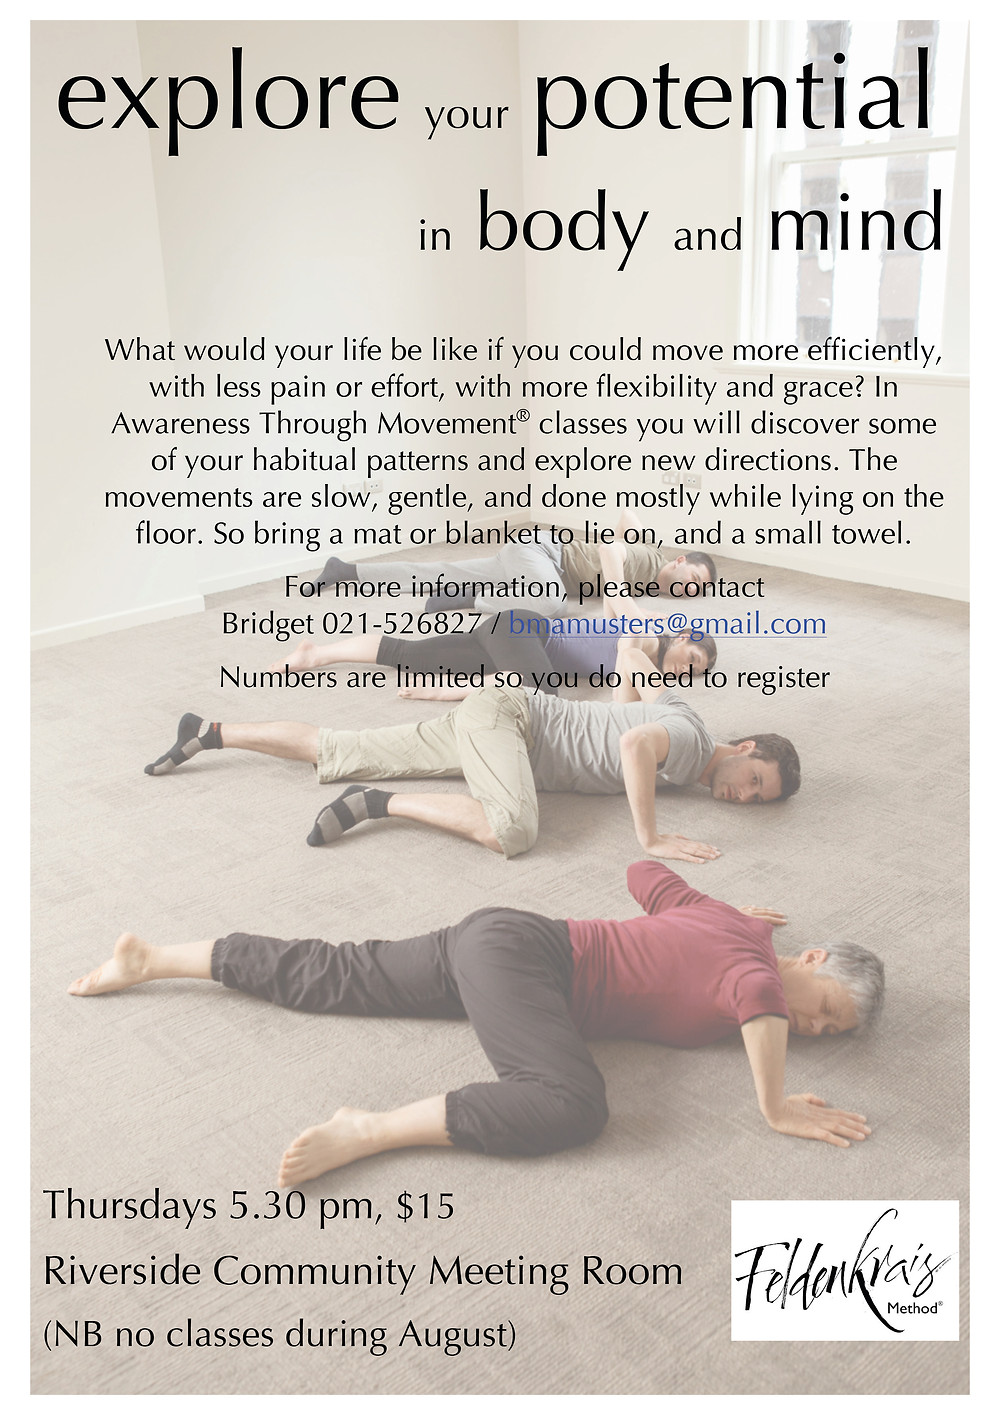 Feldenkrais Classes at Riverside